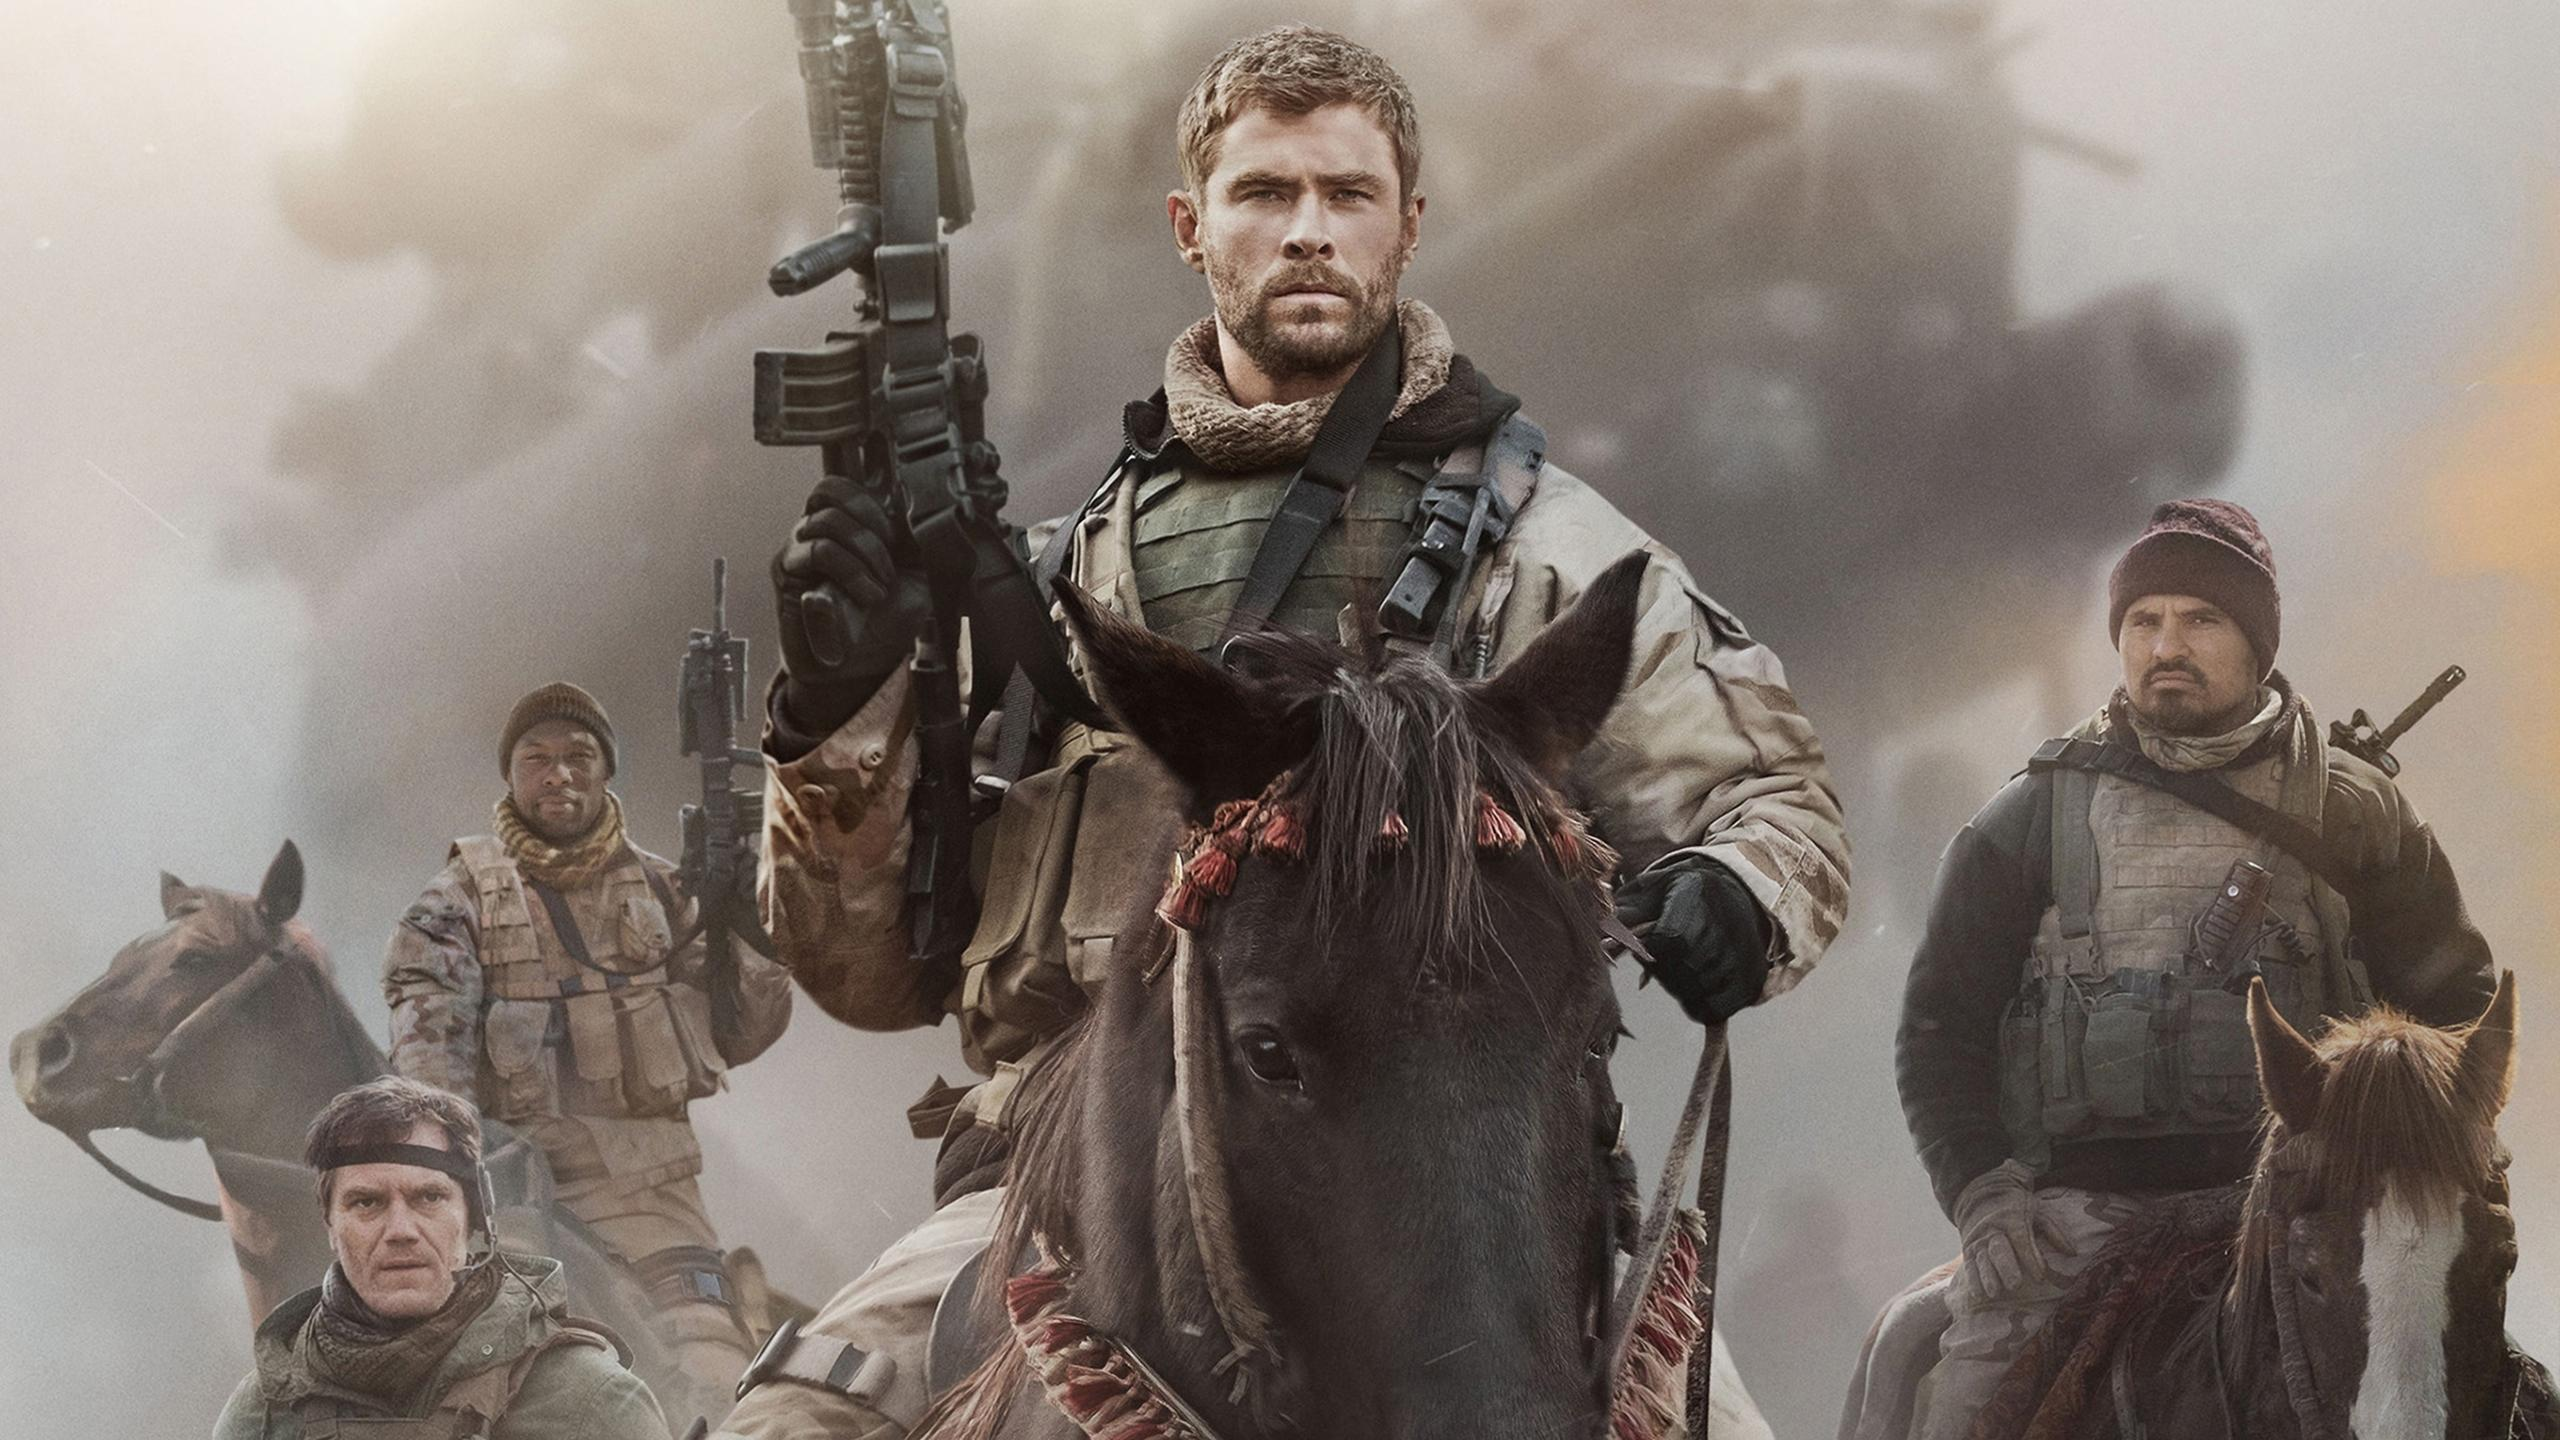 '12 Strong' review: Chris Hemsworth enlists for war movie glory